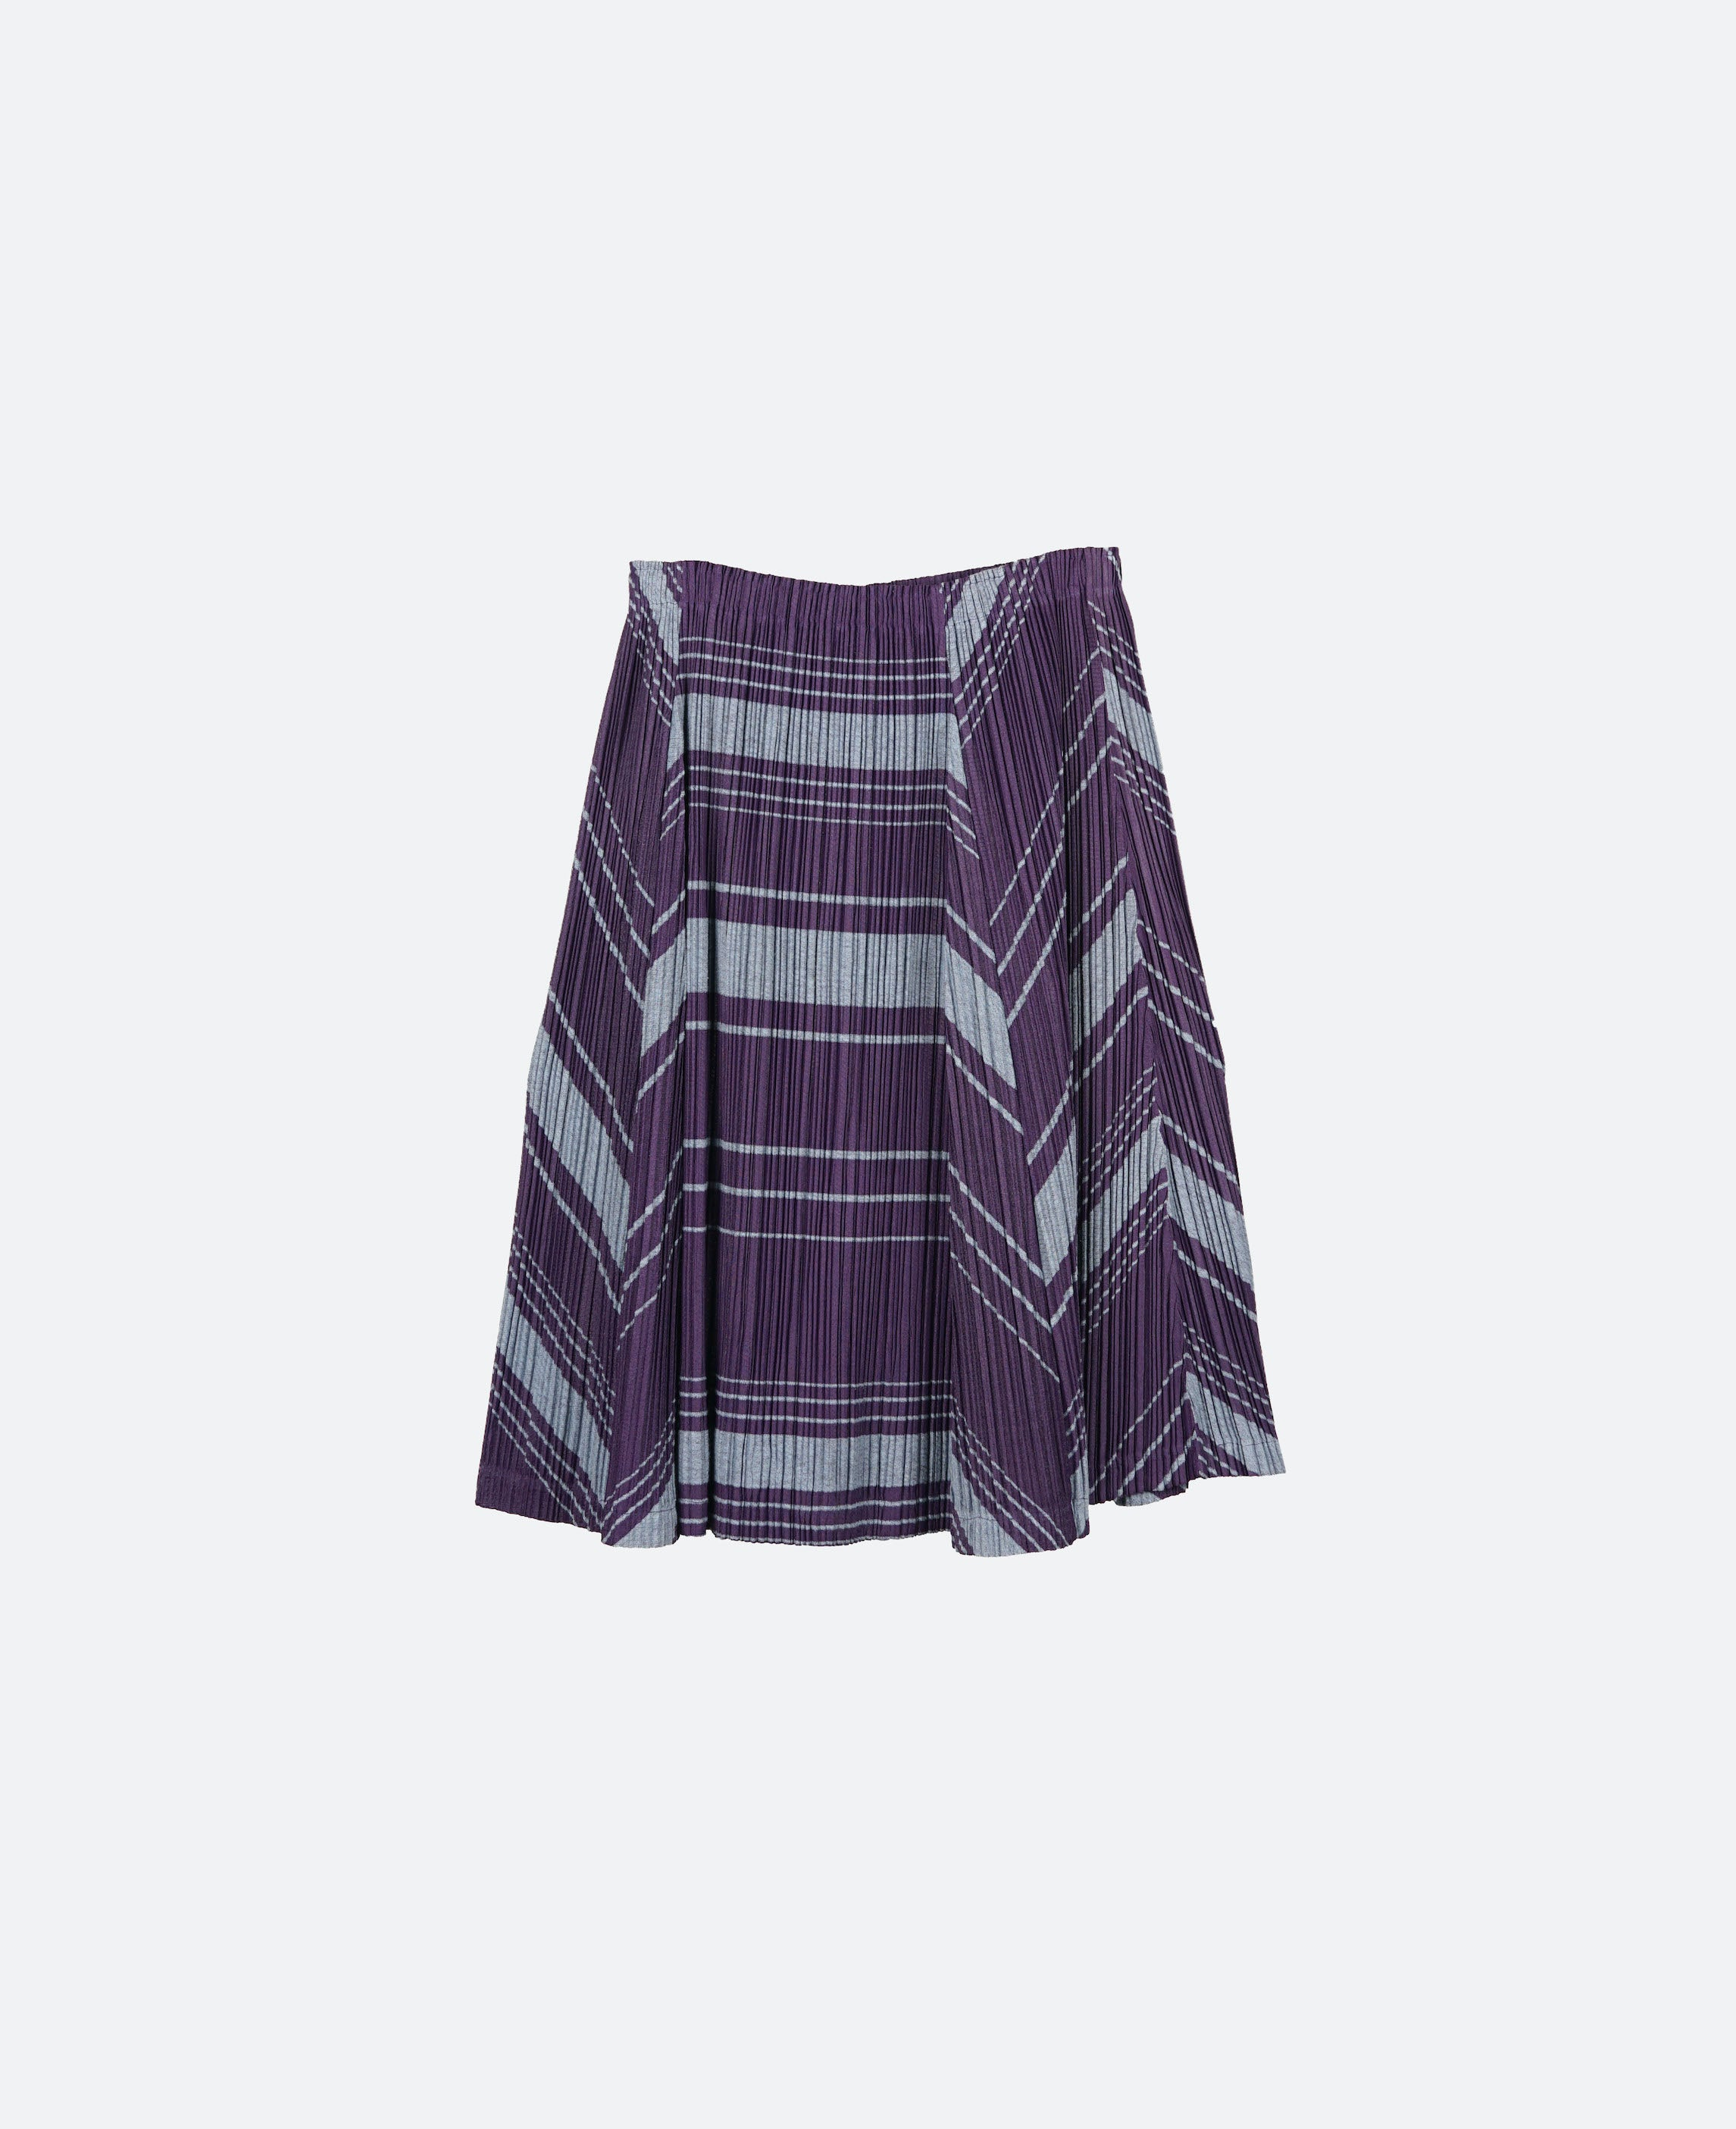 Issey Pleats Please Patterned Pleats Skirt